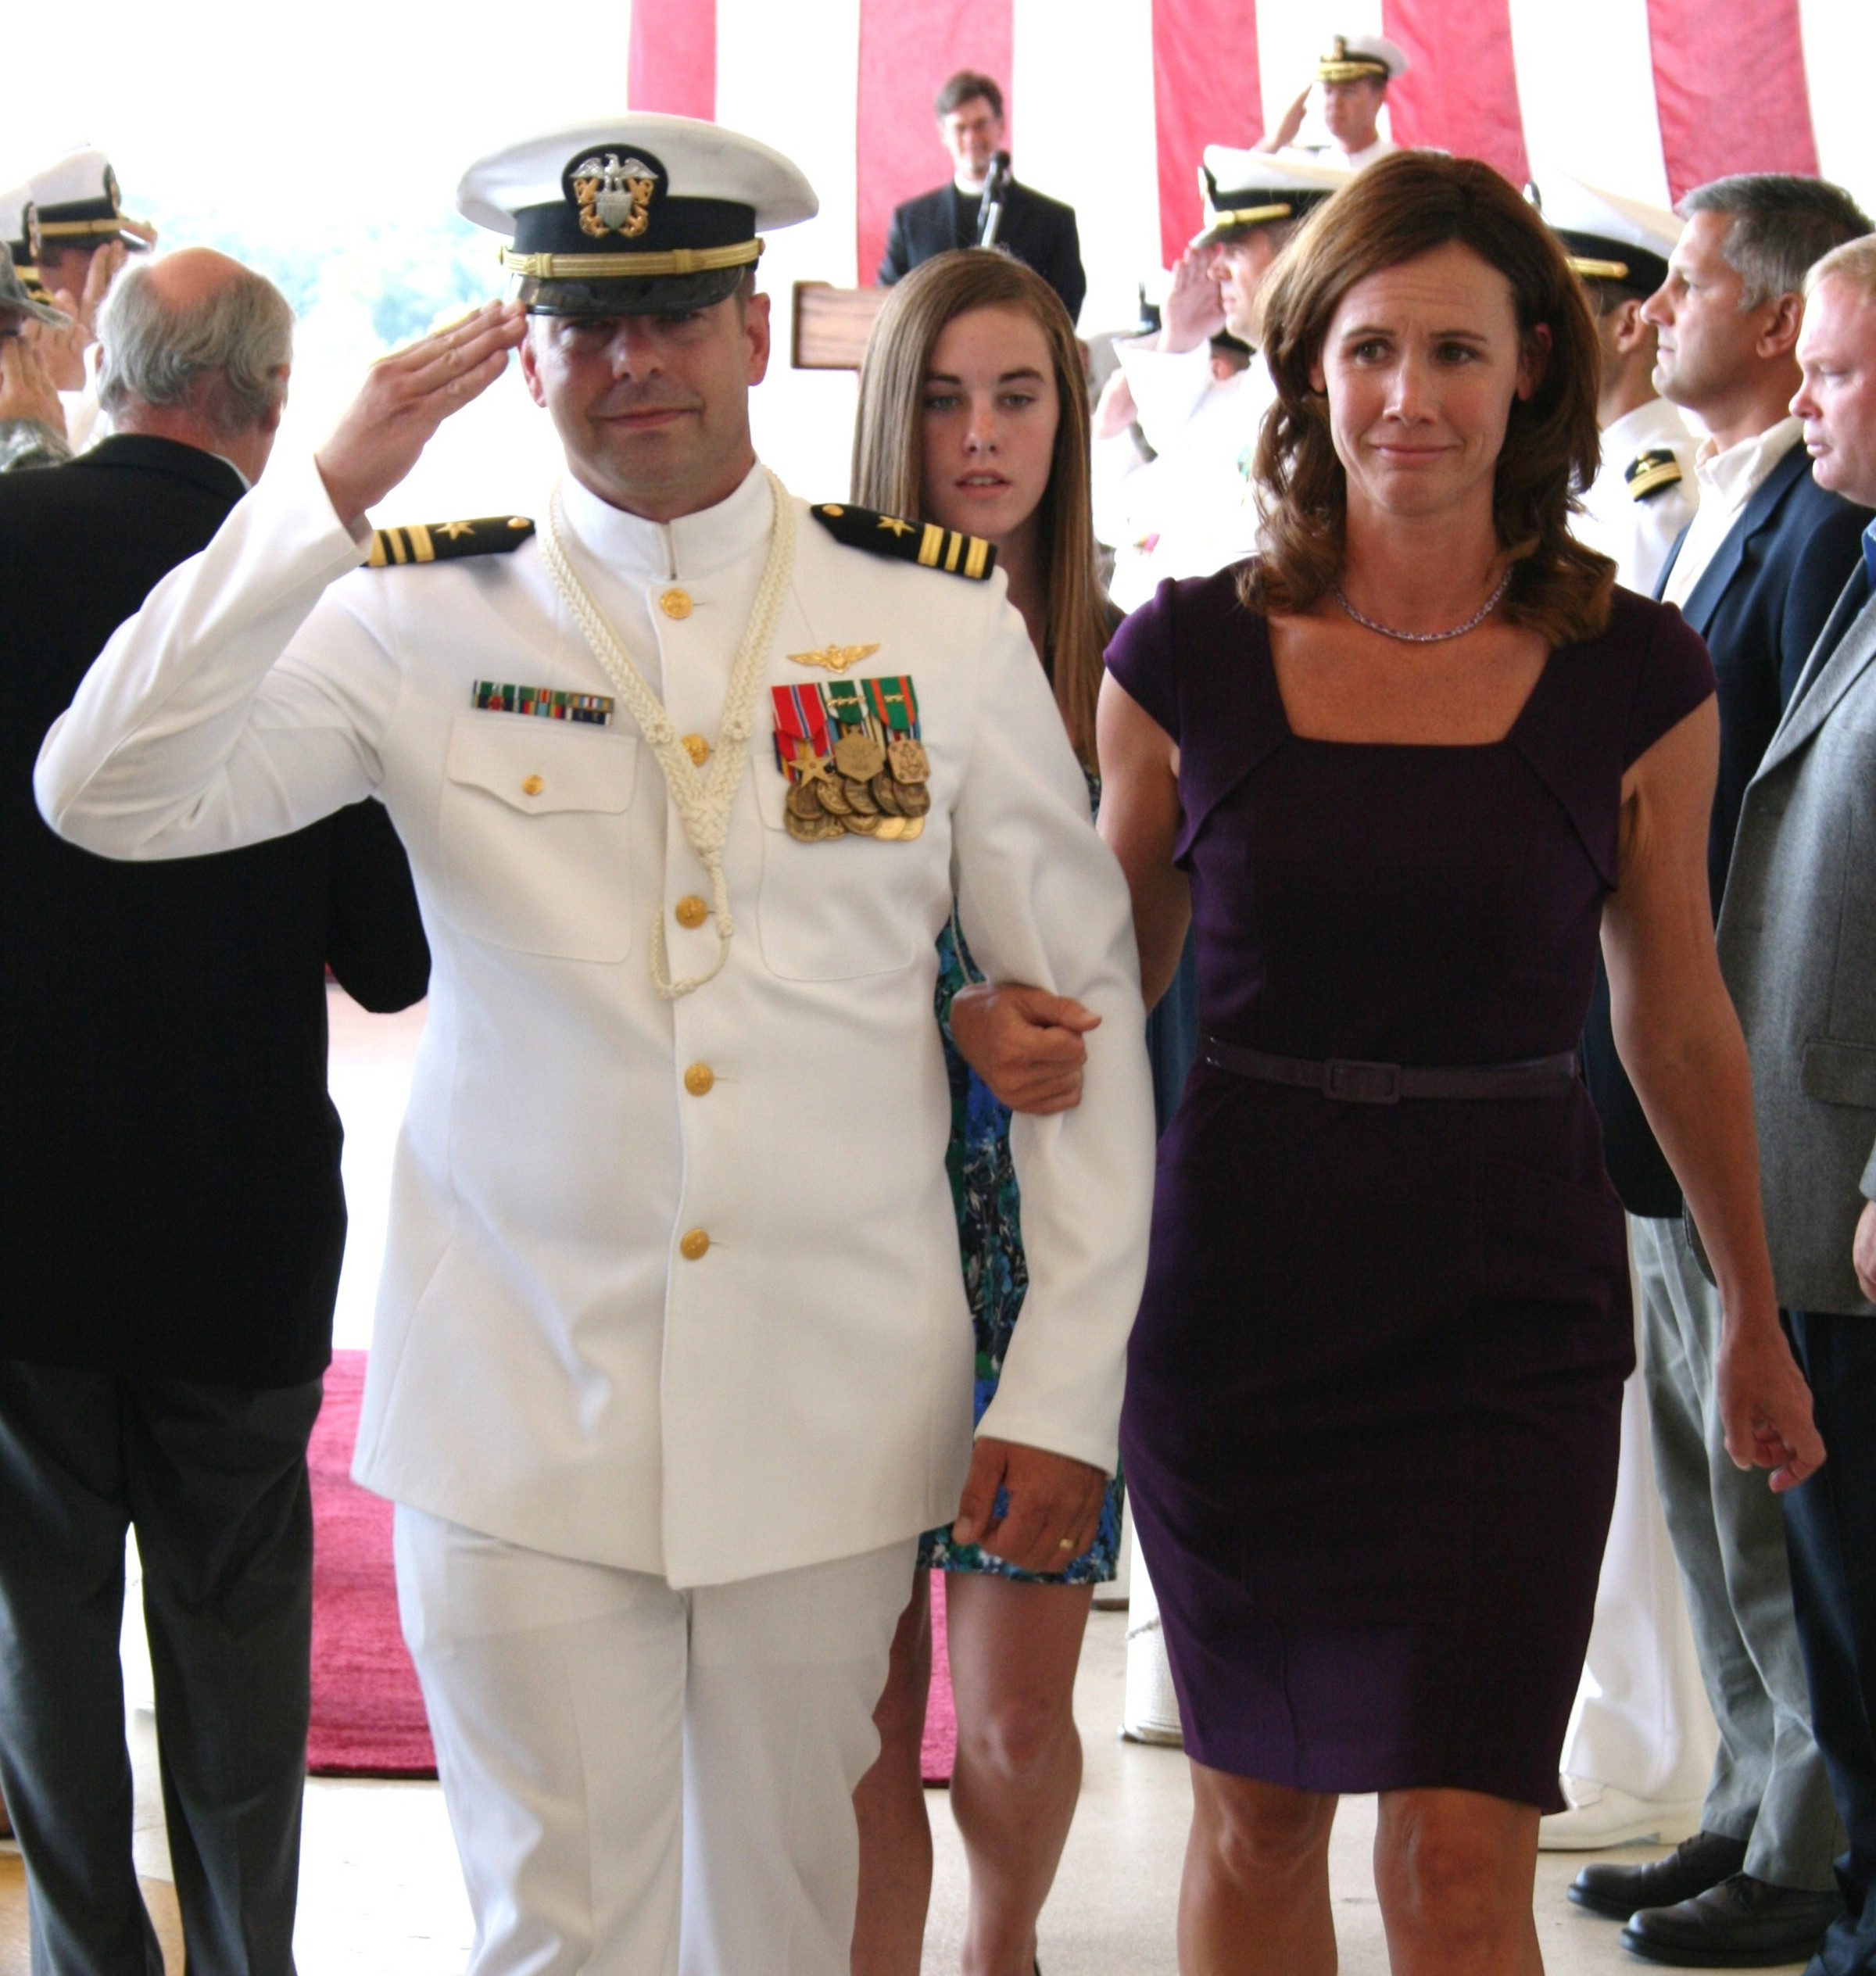 LCDR Muir and Family Retirement Ceremony